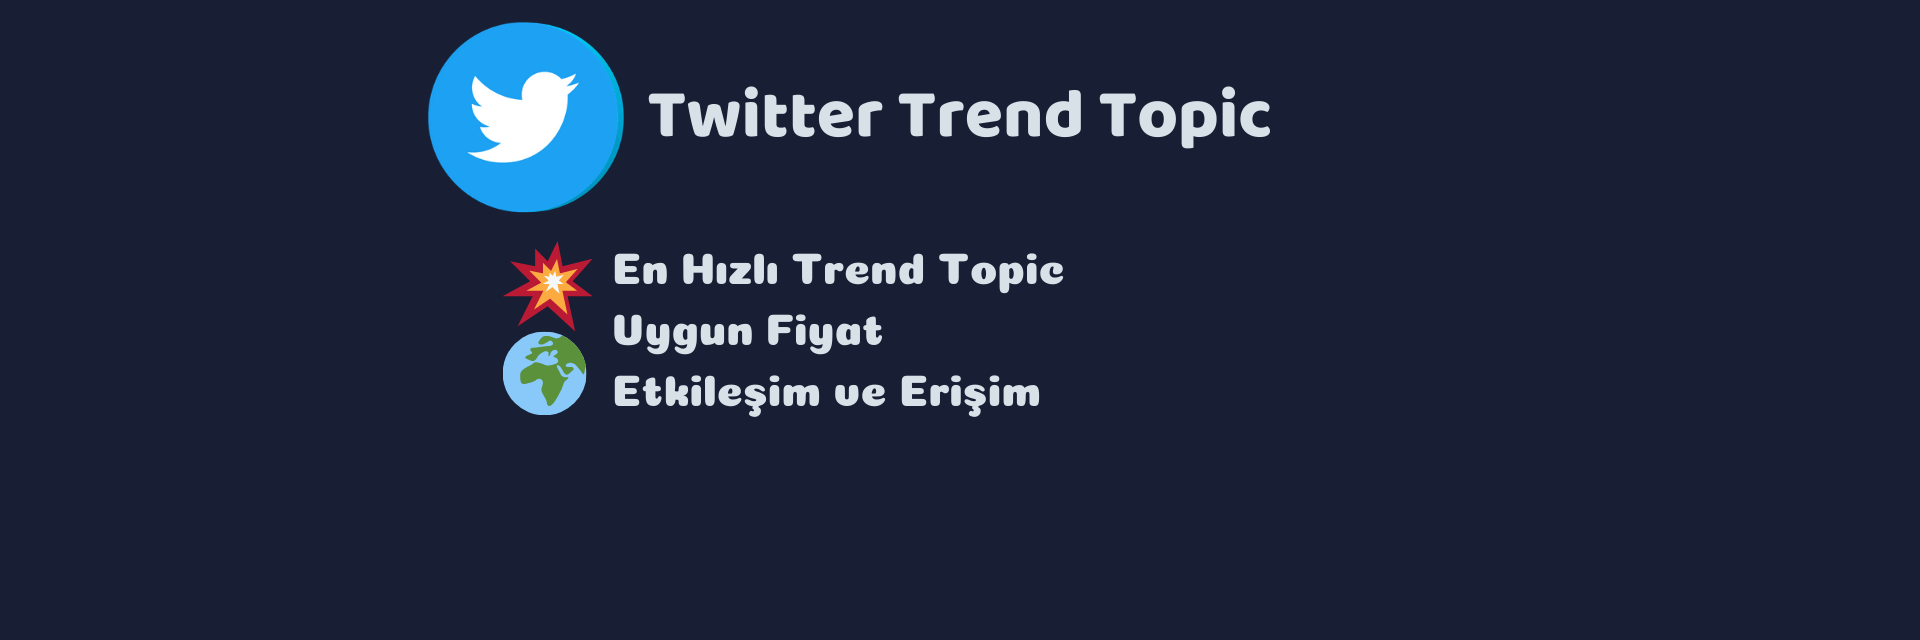 Twitter Trend Topic